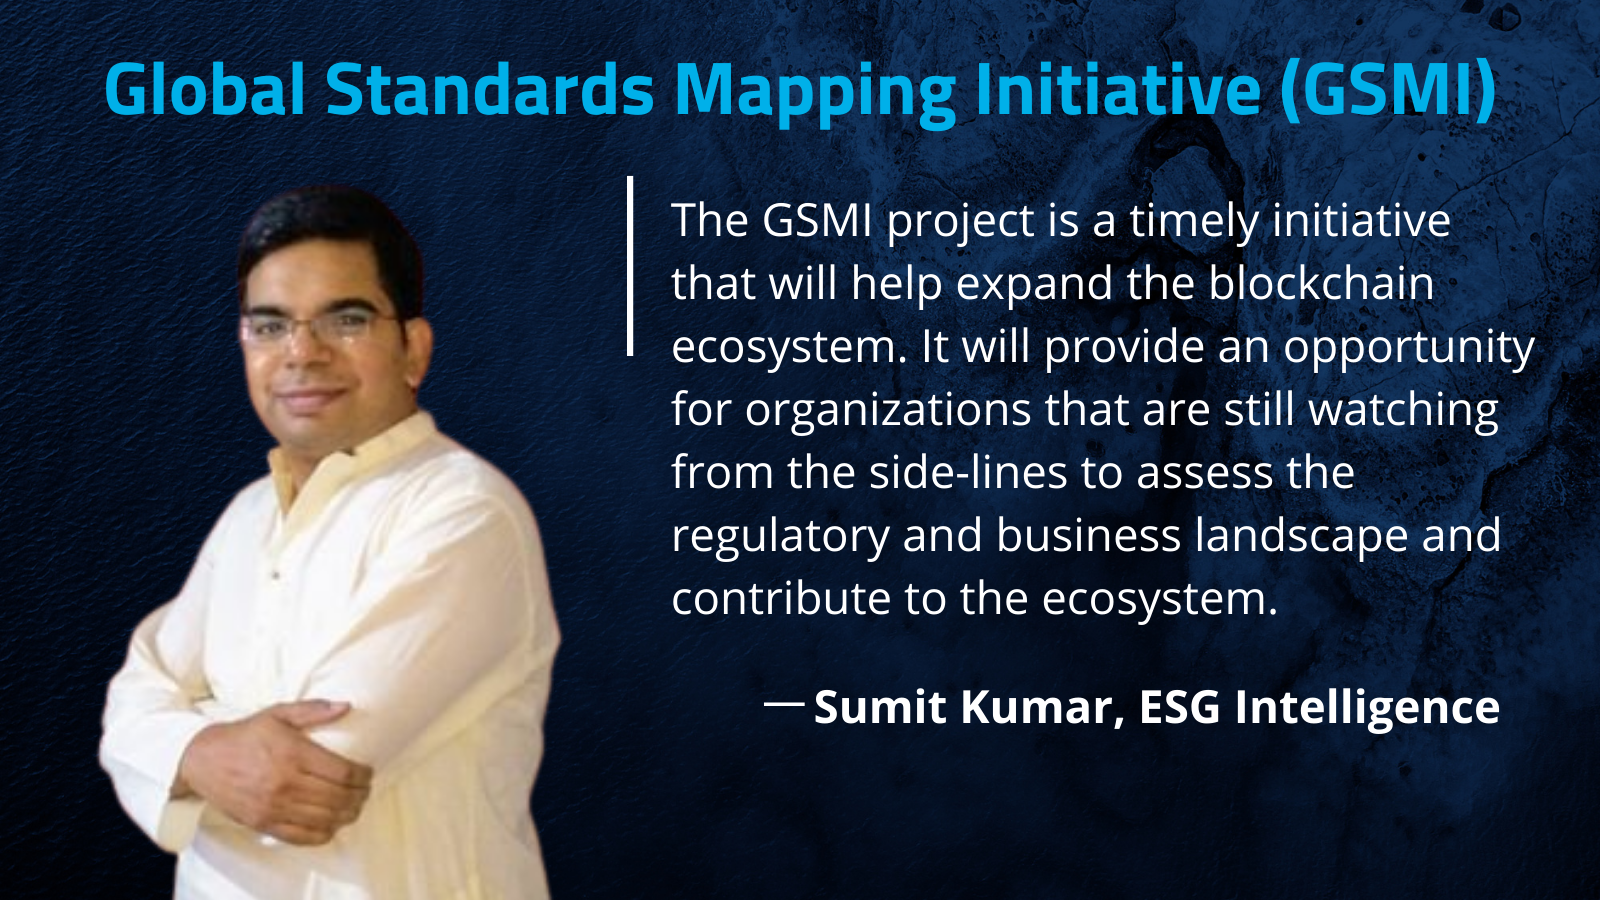 ESG Intelligence and GSMI